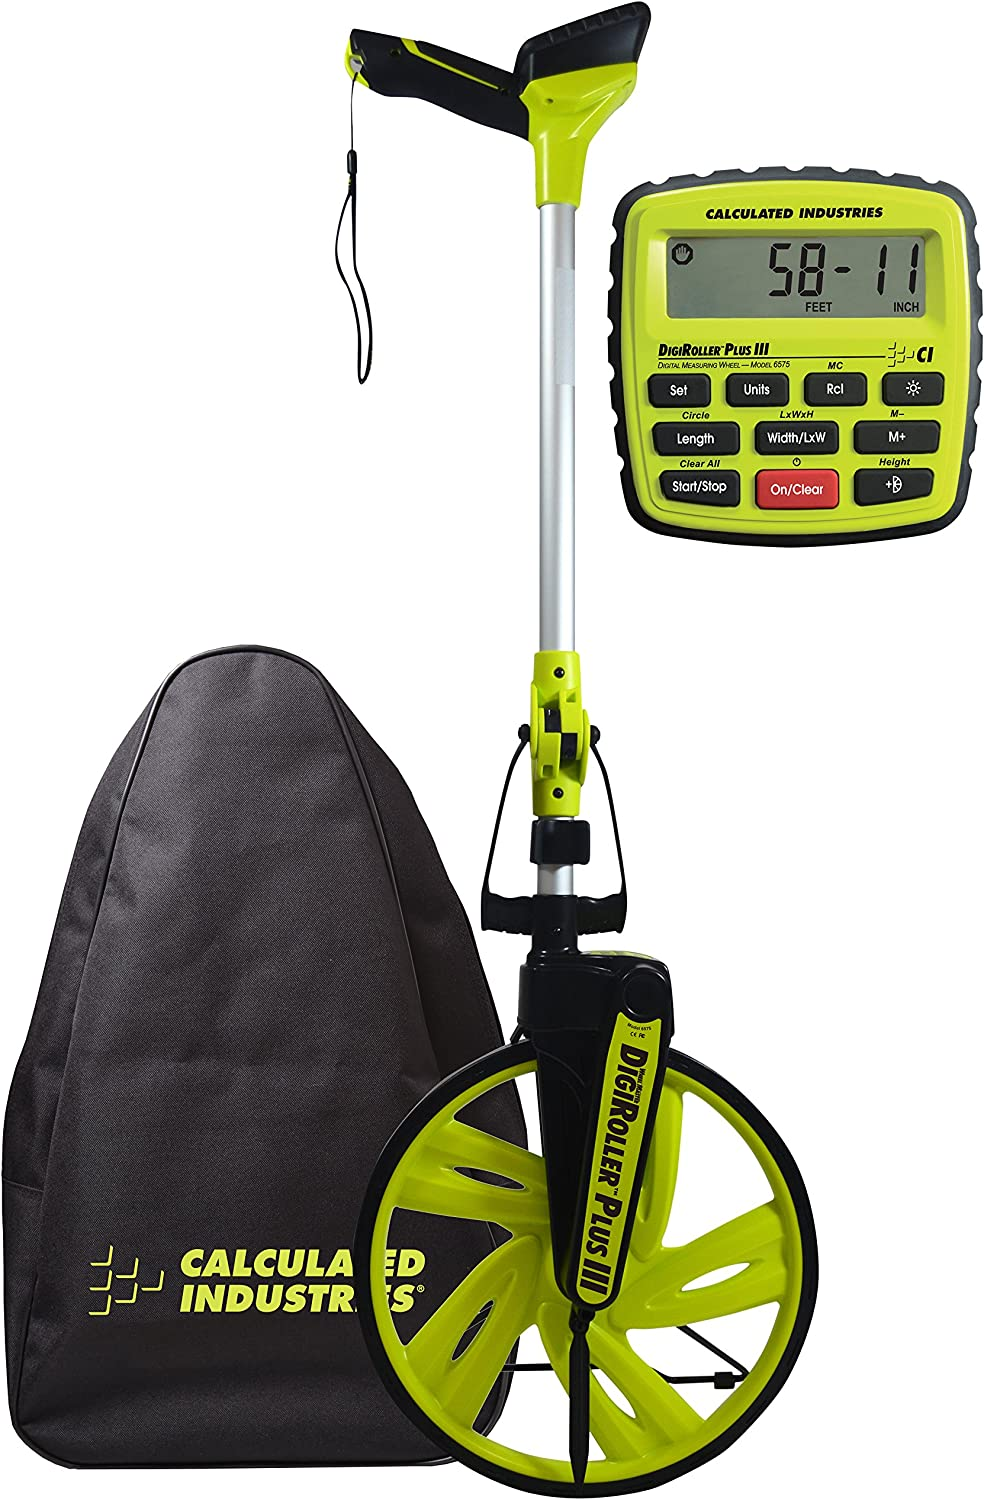 Calculated Industries #6575 DigiRoller Plus III 12.5 Inch Estimators Electronic Distance Measuring Wheel with Large Backlit Digital Display; Measure in Feet, Inches, Meters, Yards; FREE Carrying Pack